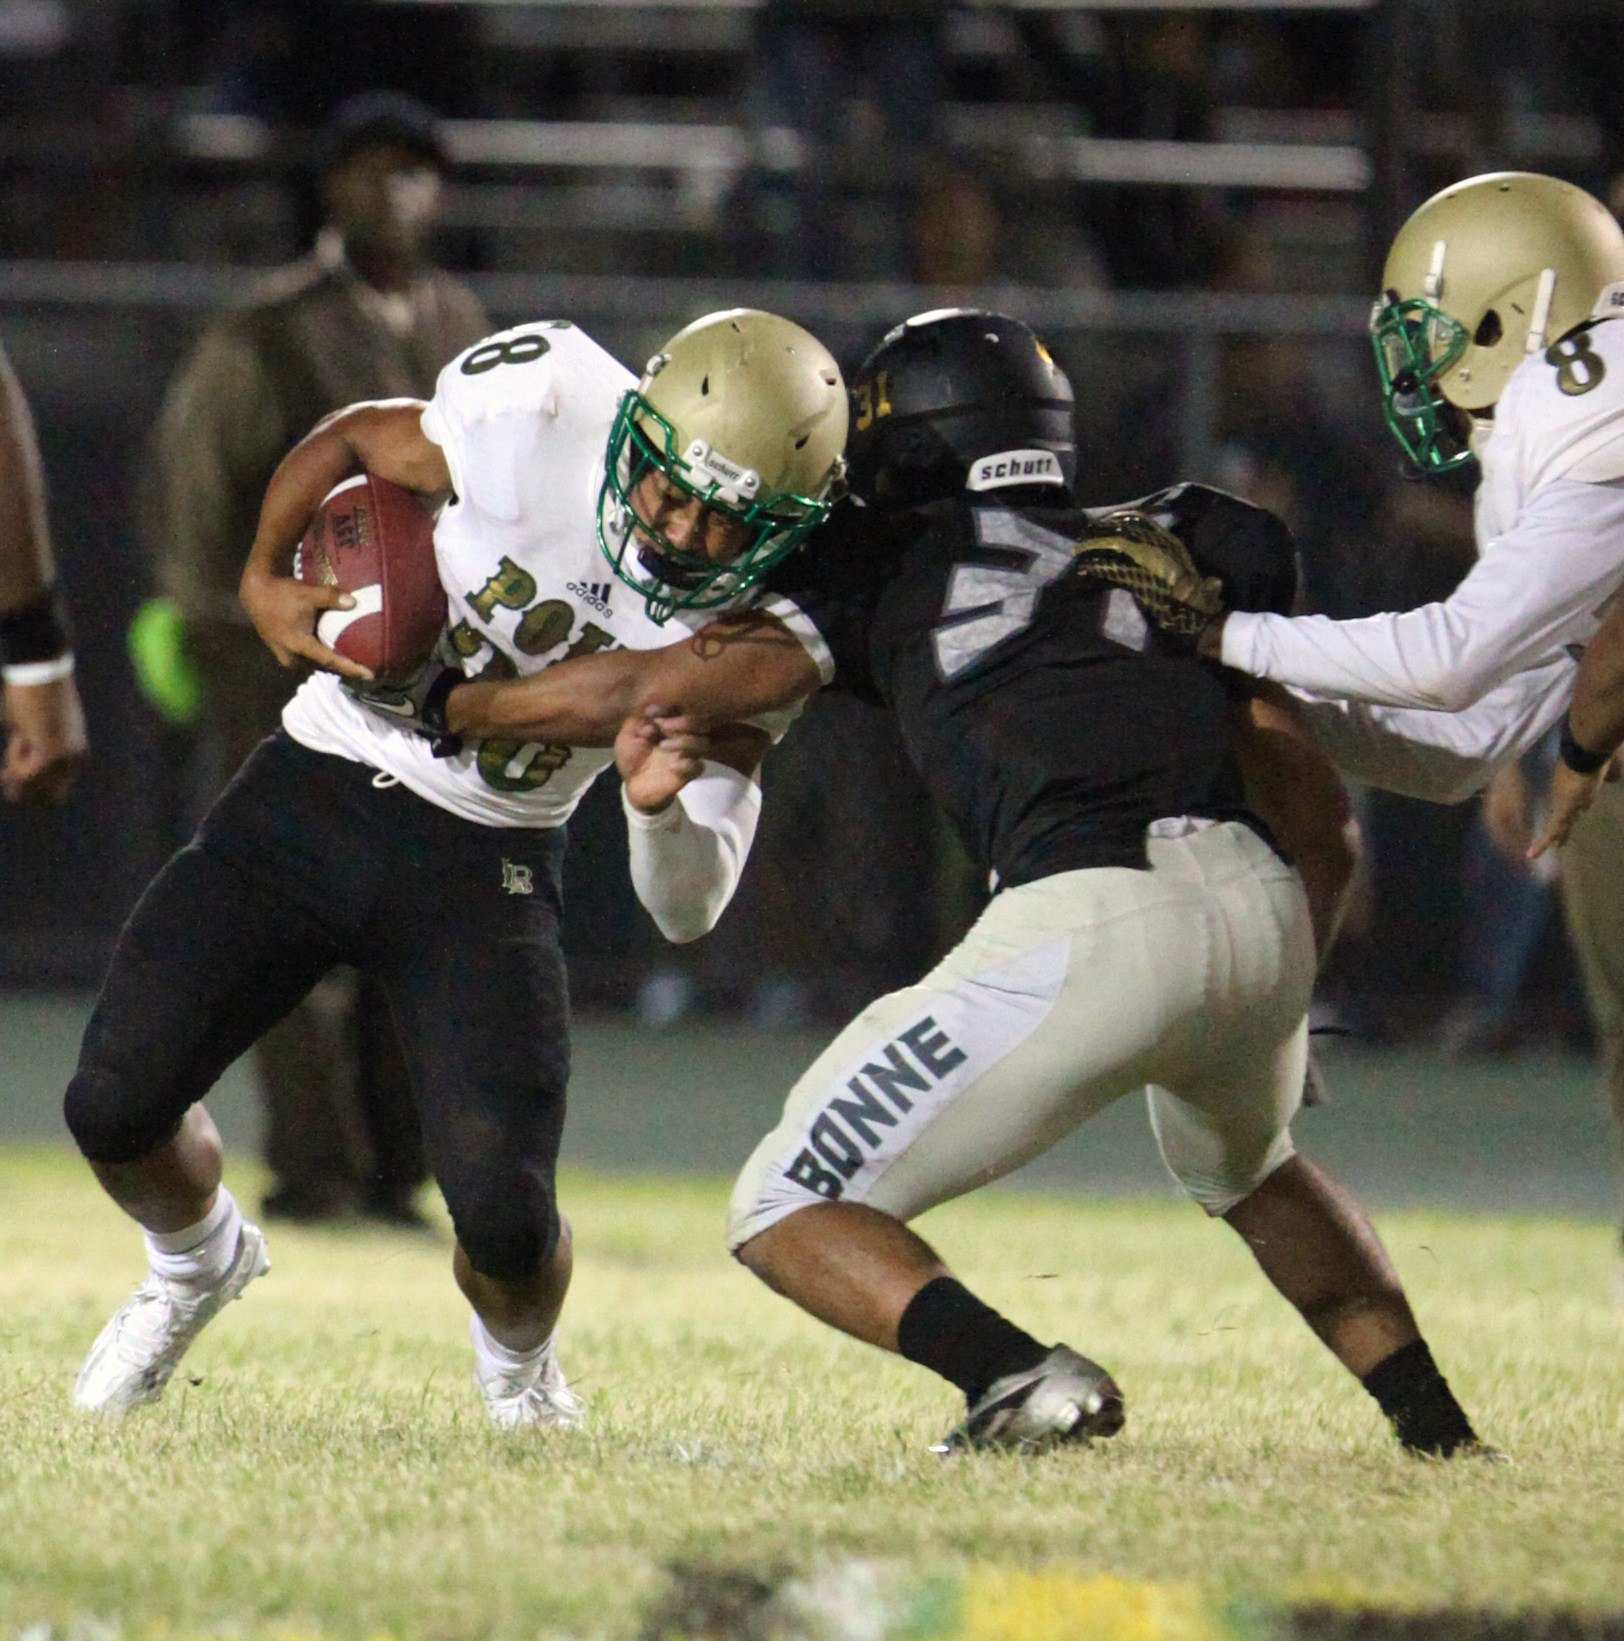 Poly vs. Narbonne Photo by William Johnson